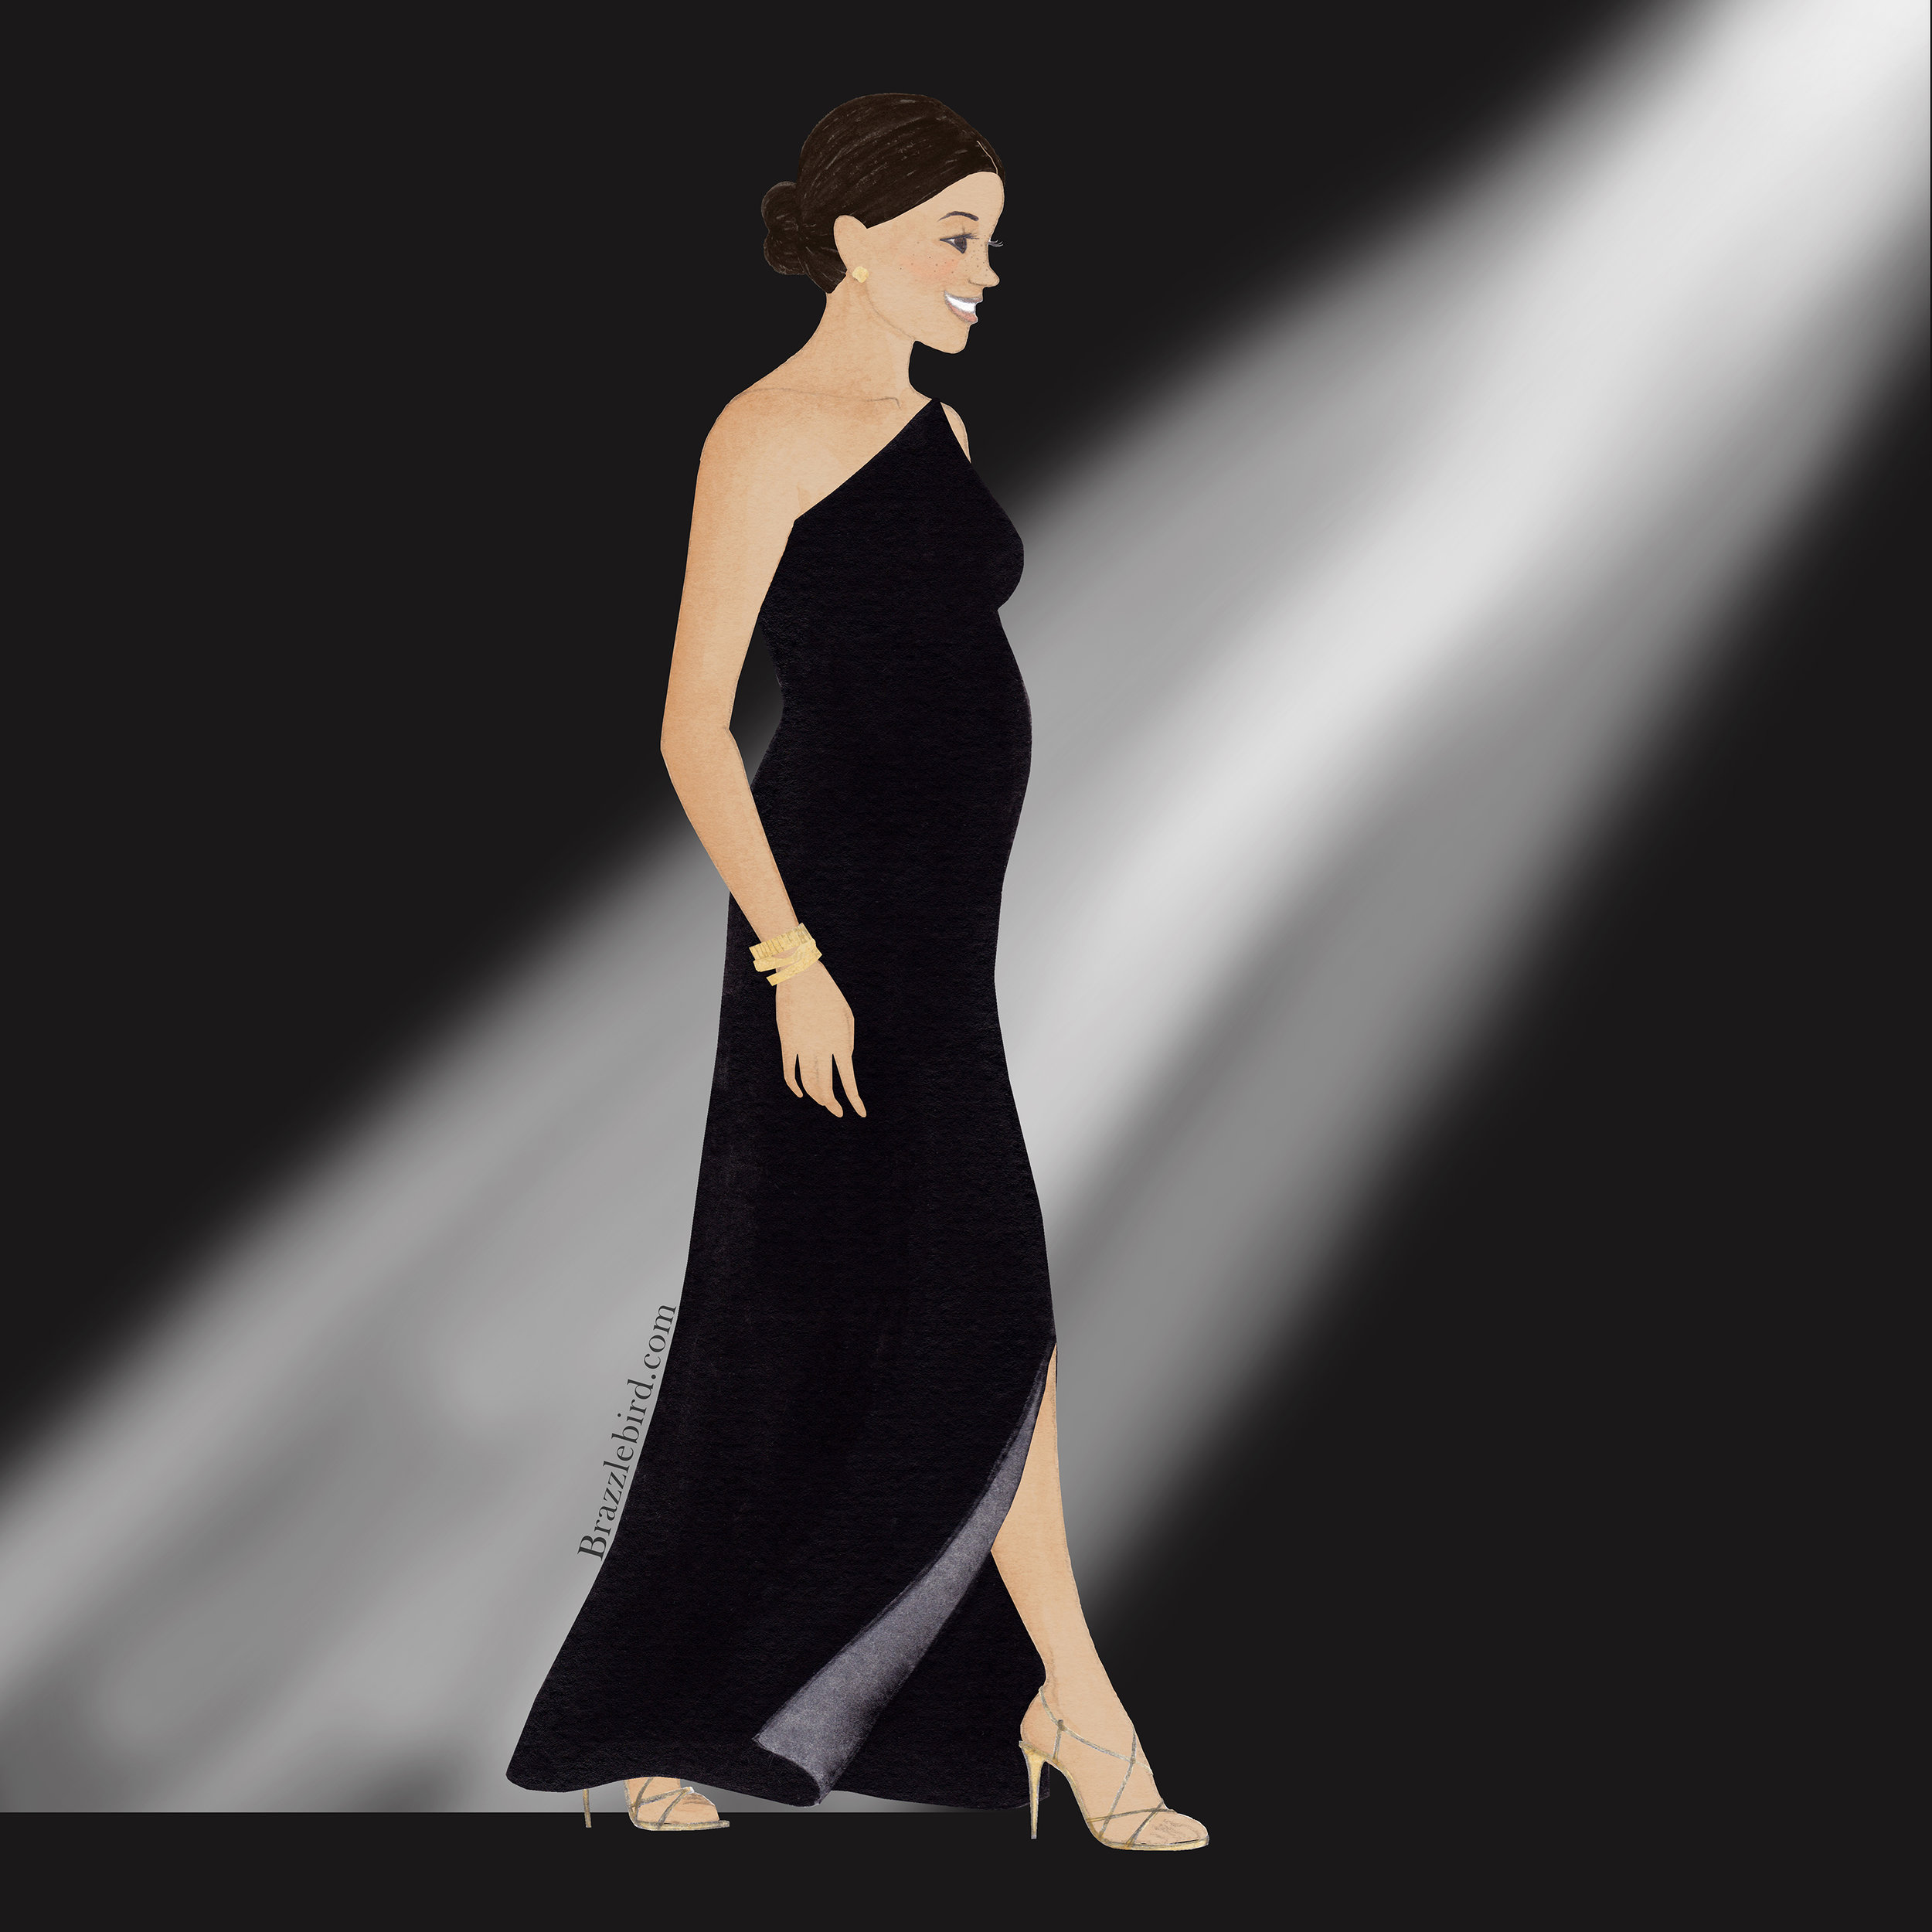 Brazzlebird Meghan Markle British Fashion Awards Givenchy Fashion Illustration